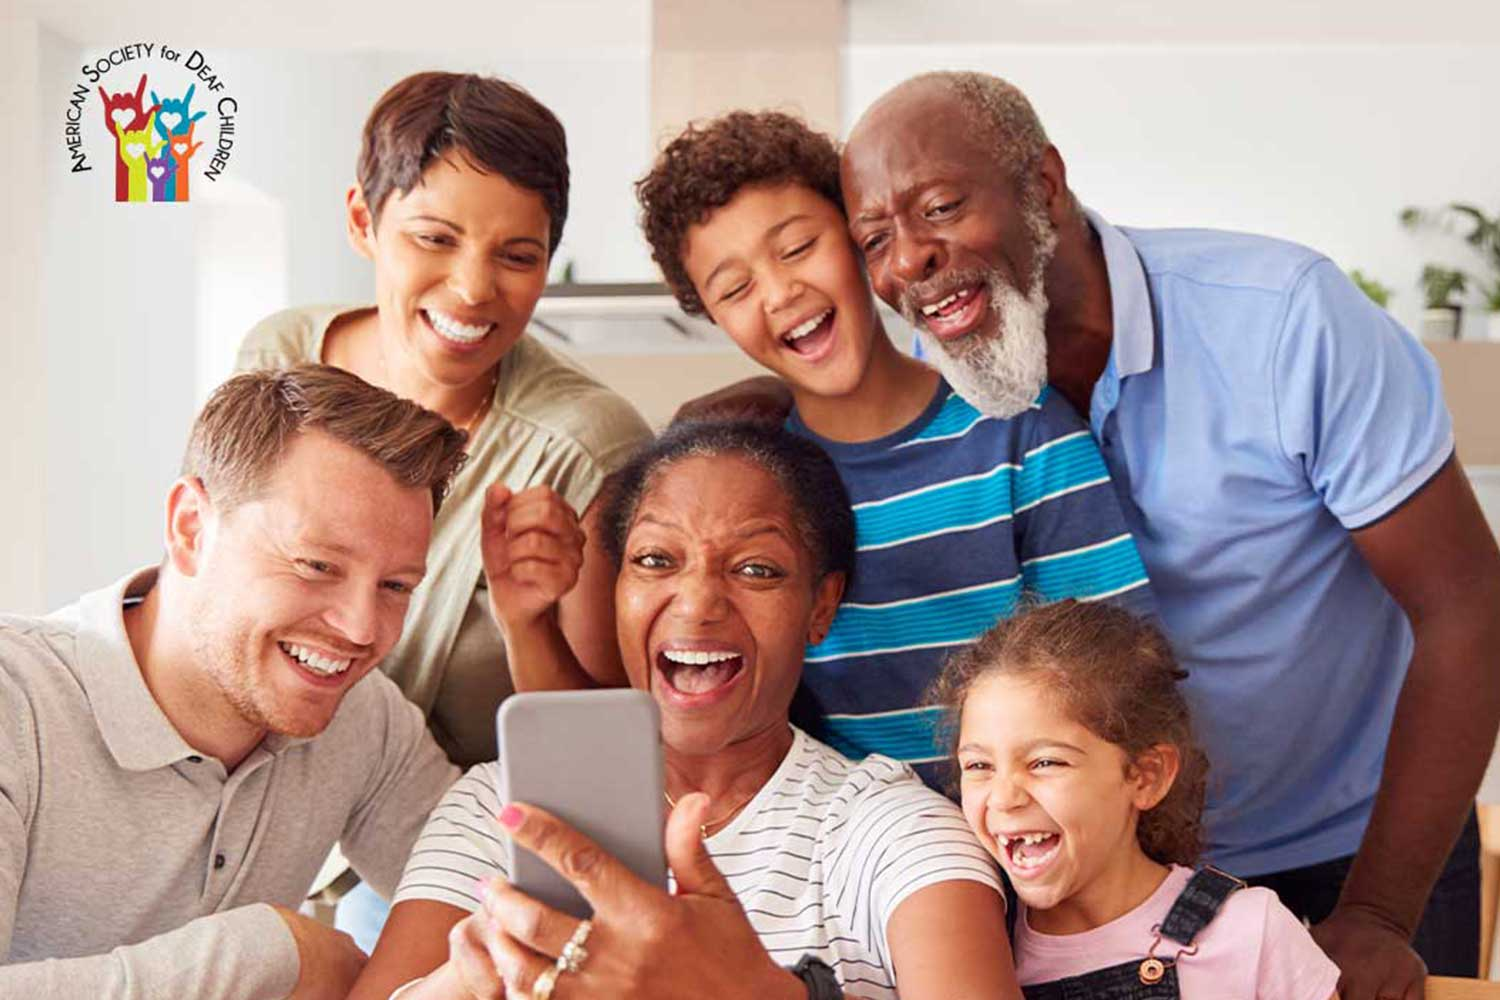 image shows a happy, multigenerational family taking a selfie or talking to someone through video chat